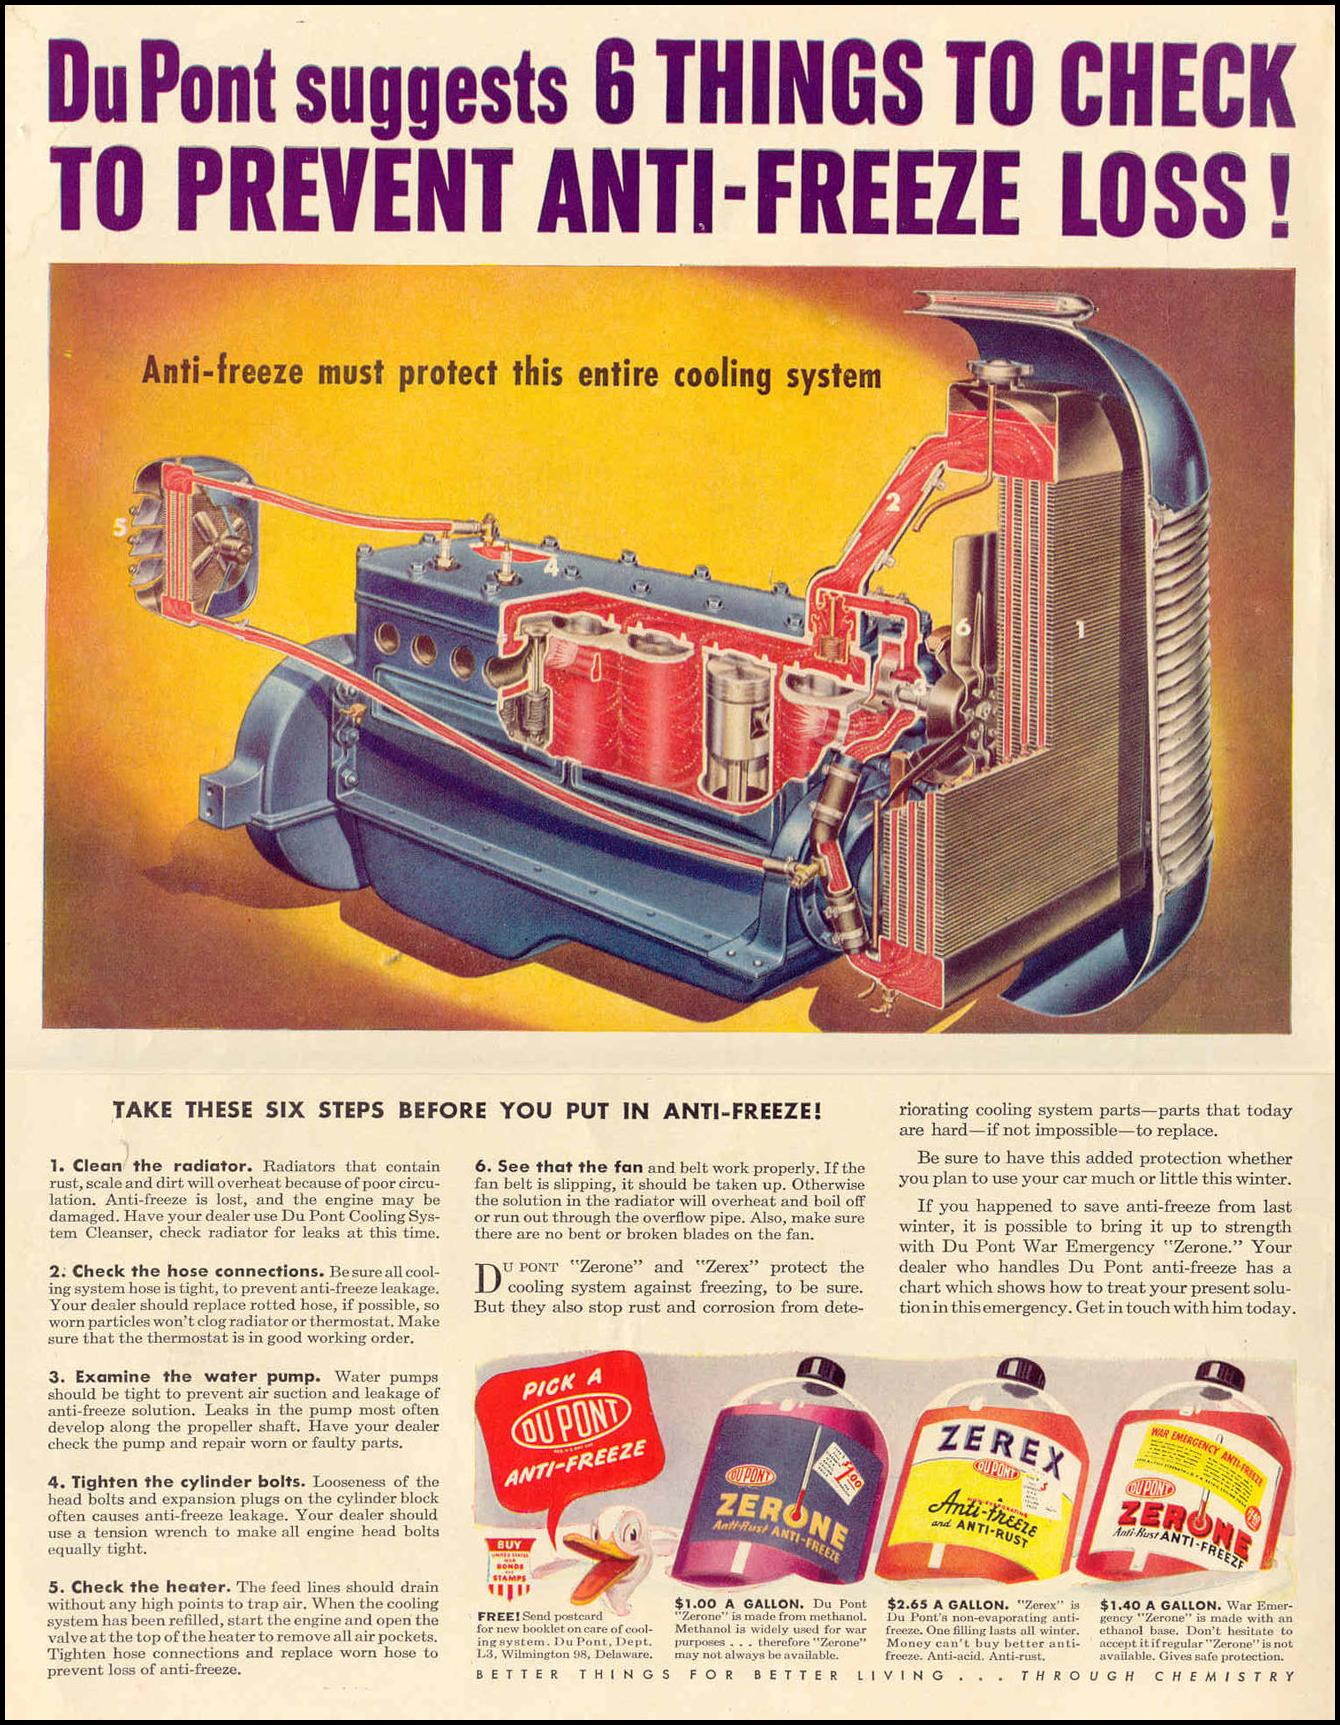 DU PONT ANTI-FREEZE LIFE 11/01/1943 INSIDE FRONT